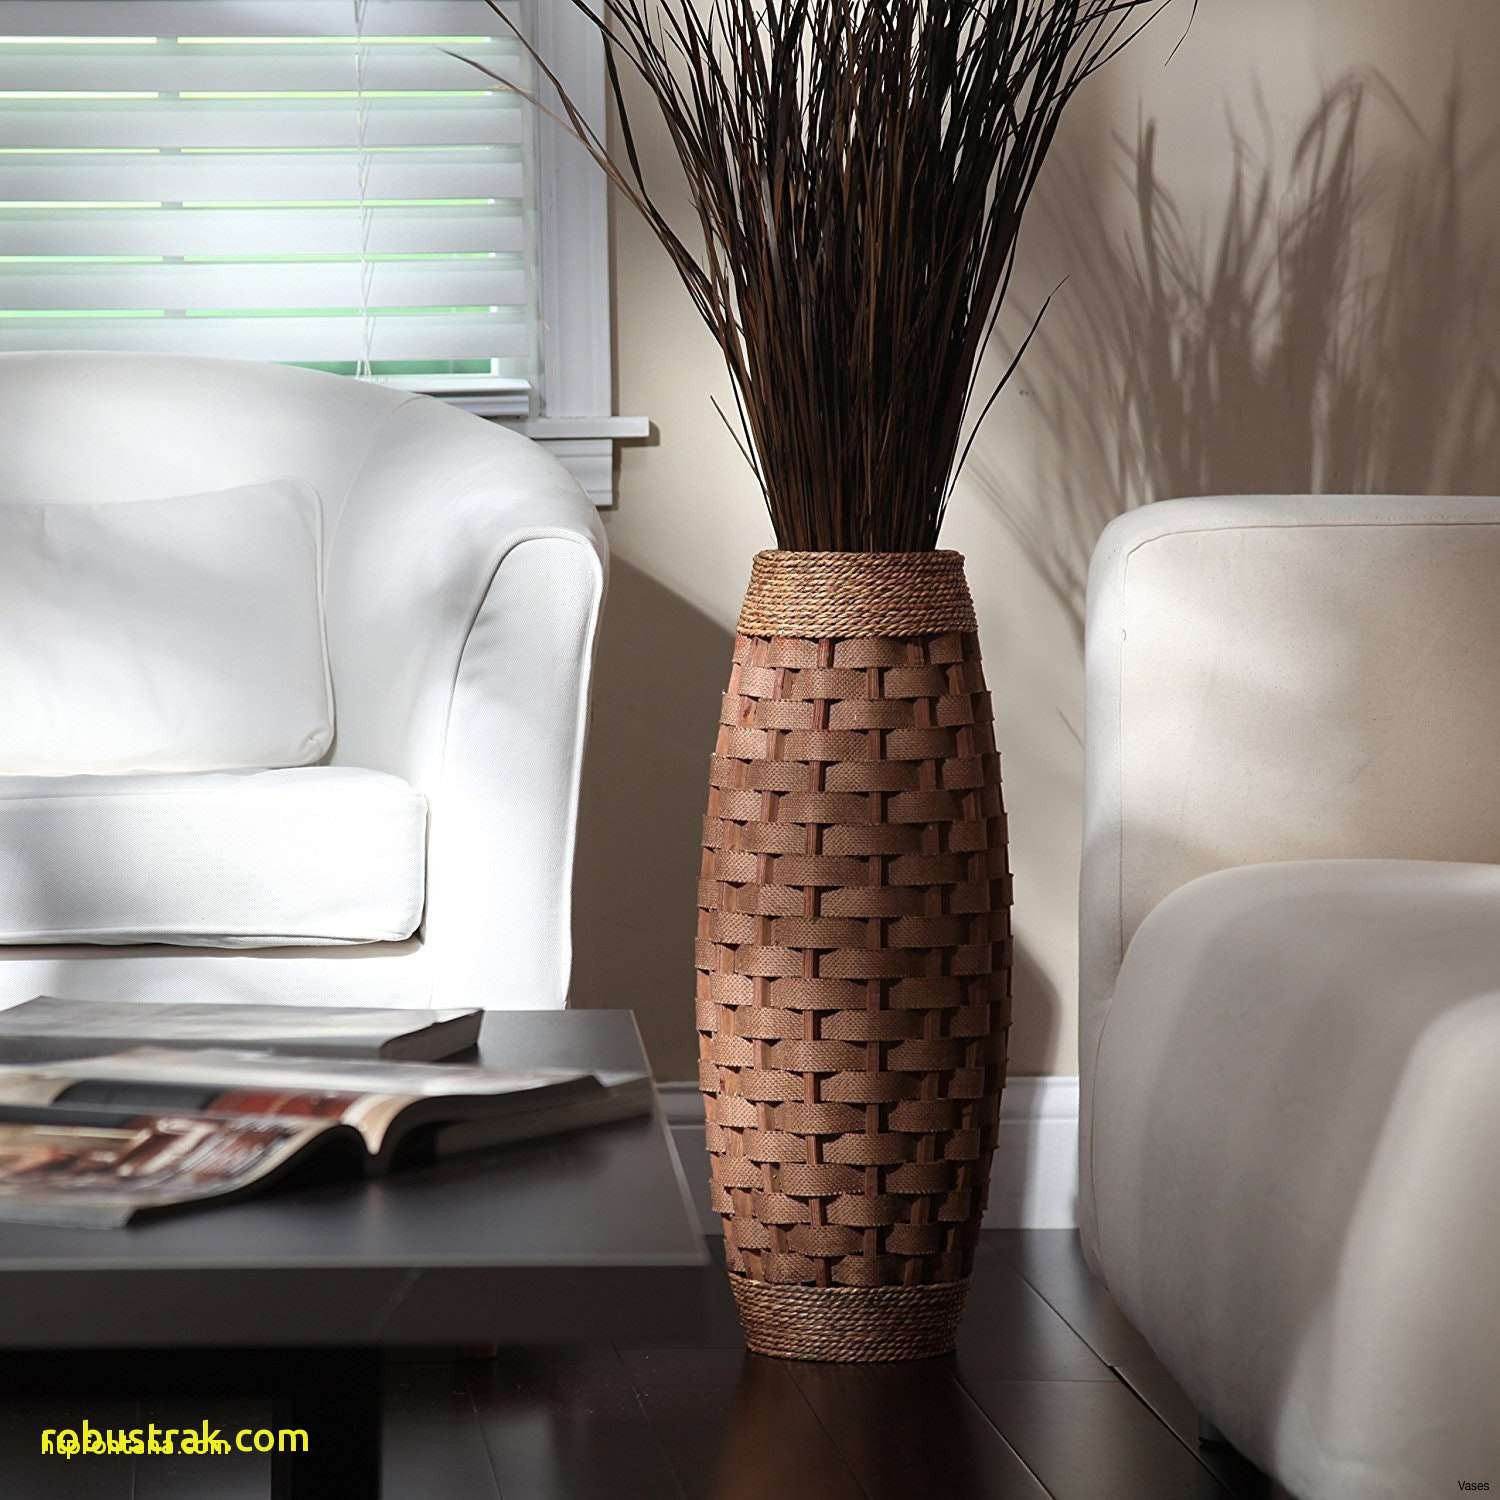 lenox crystal vase value of living room mirror beautiful sofa tv and mirror picture of lenox with living room mirror elegant fresh living room flooring of living room mirror beautiful sofa tv and